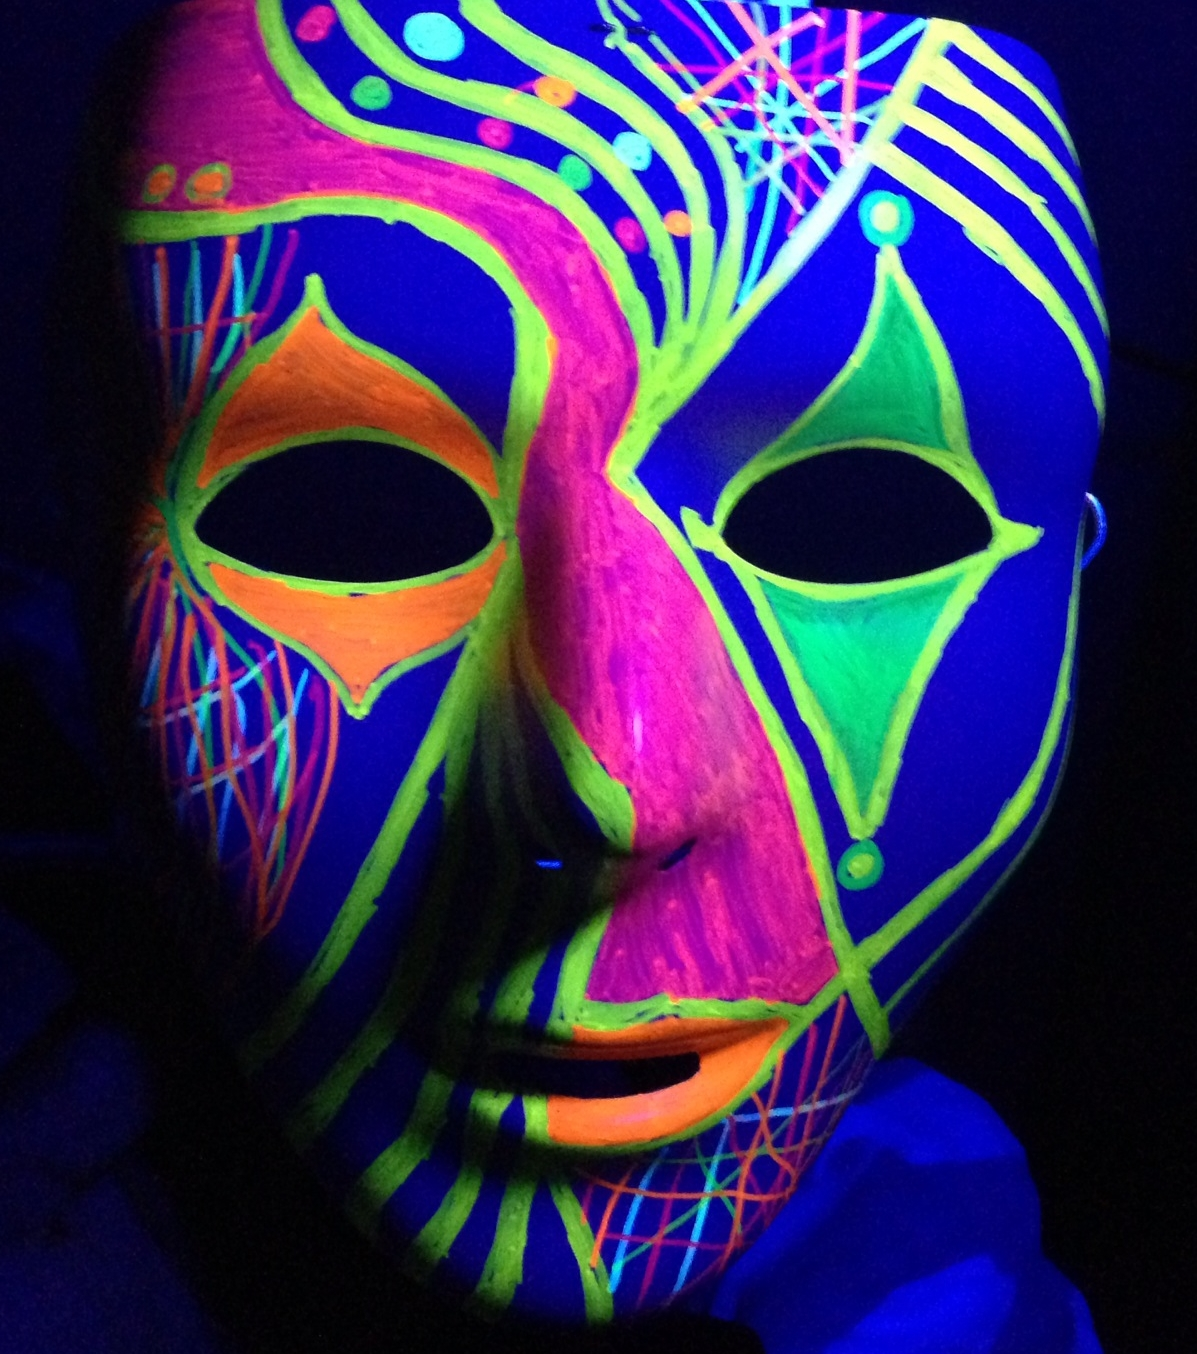 glow in the dark mask